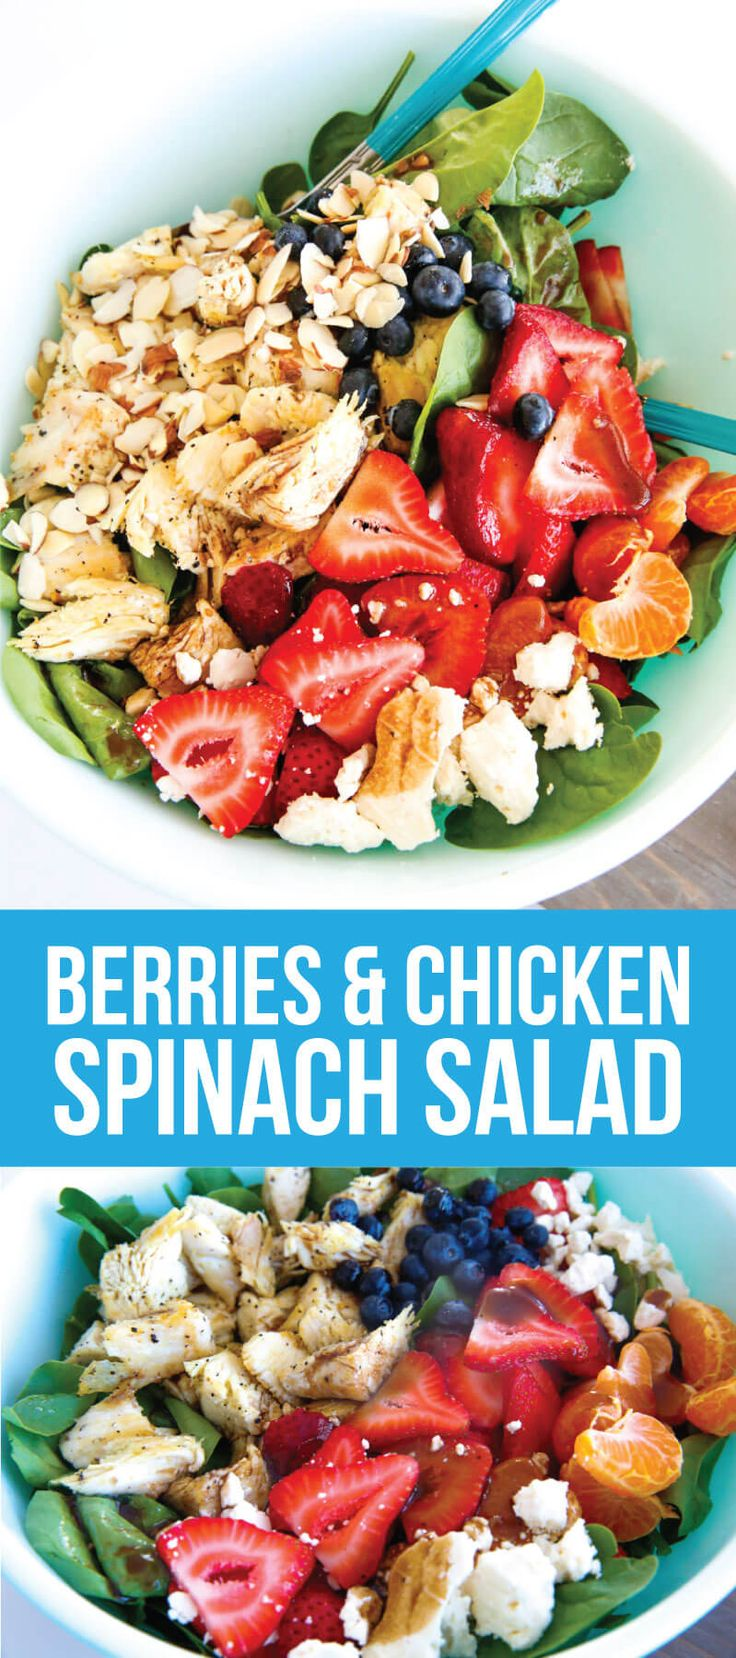 Berries and Chicken Spinach Salad - a tasty, healthy salad that is super easy to make.  Made even better with Rubber Maid Fresh Works Produce Saver.   #sp www.thirtyhandmadedays.com